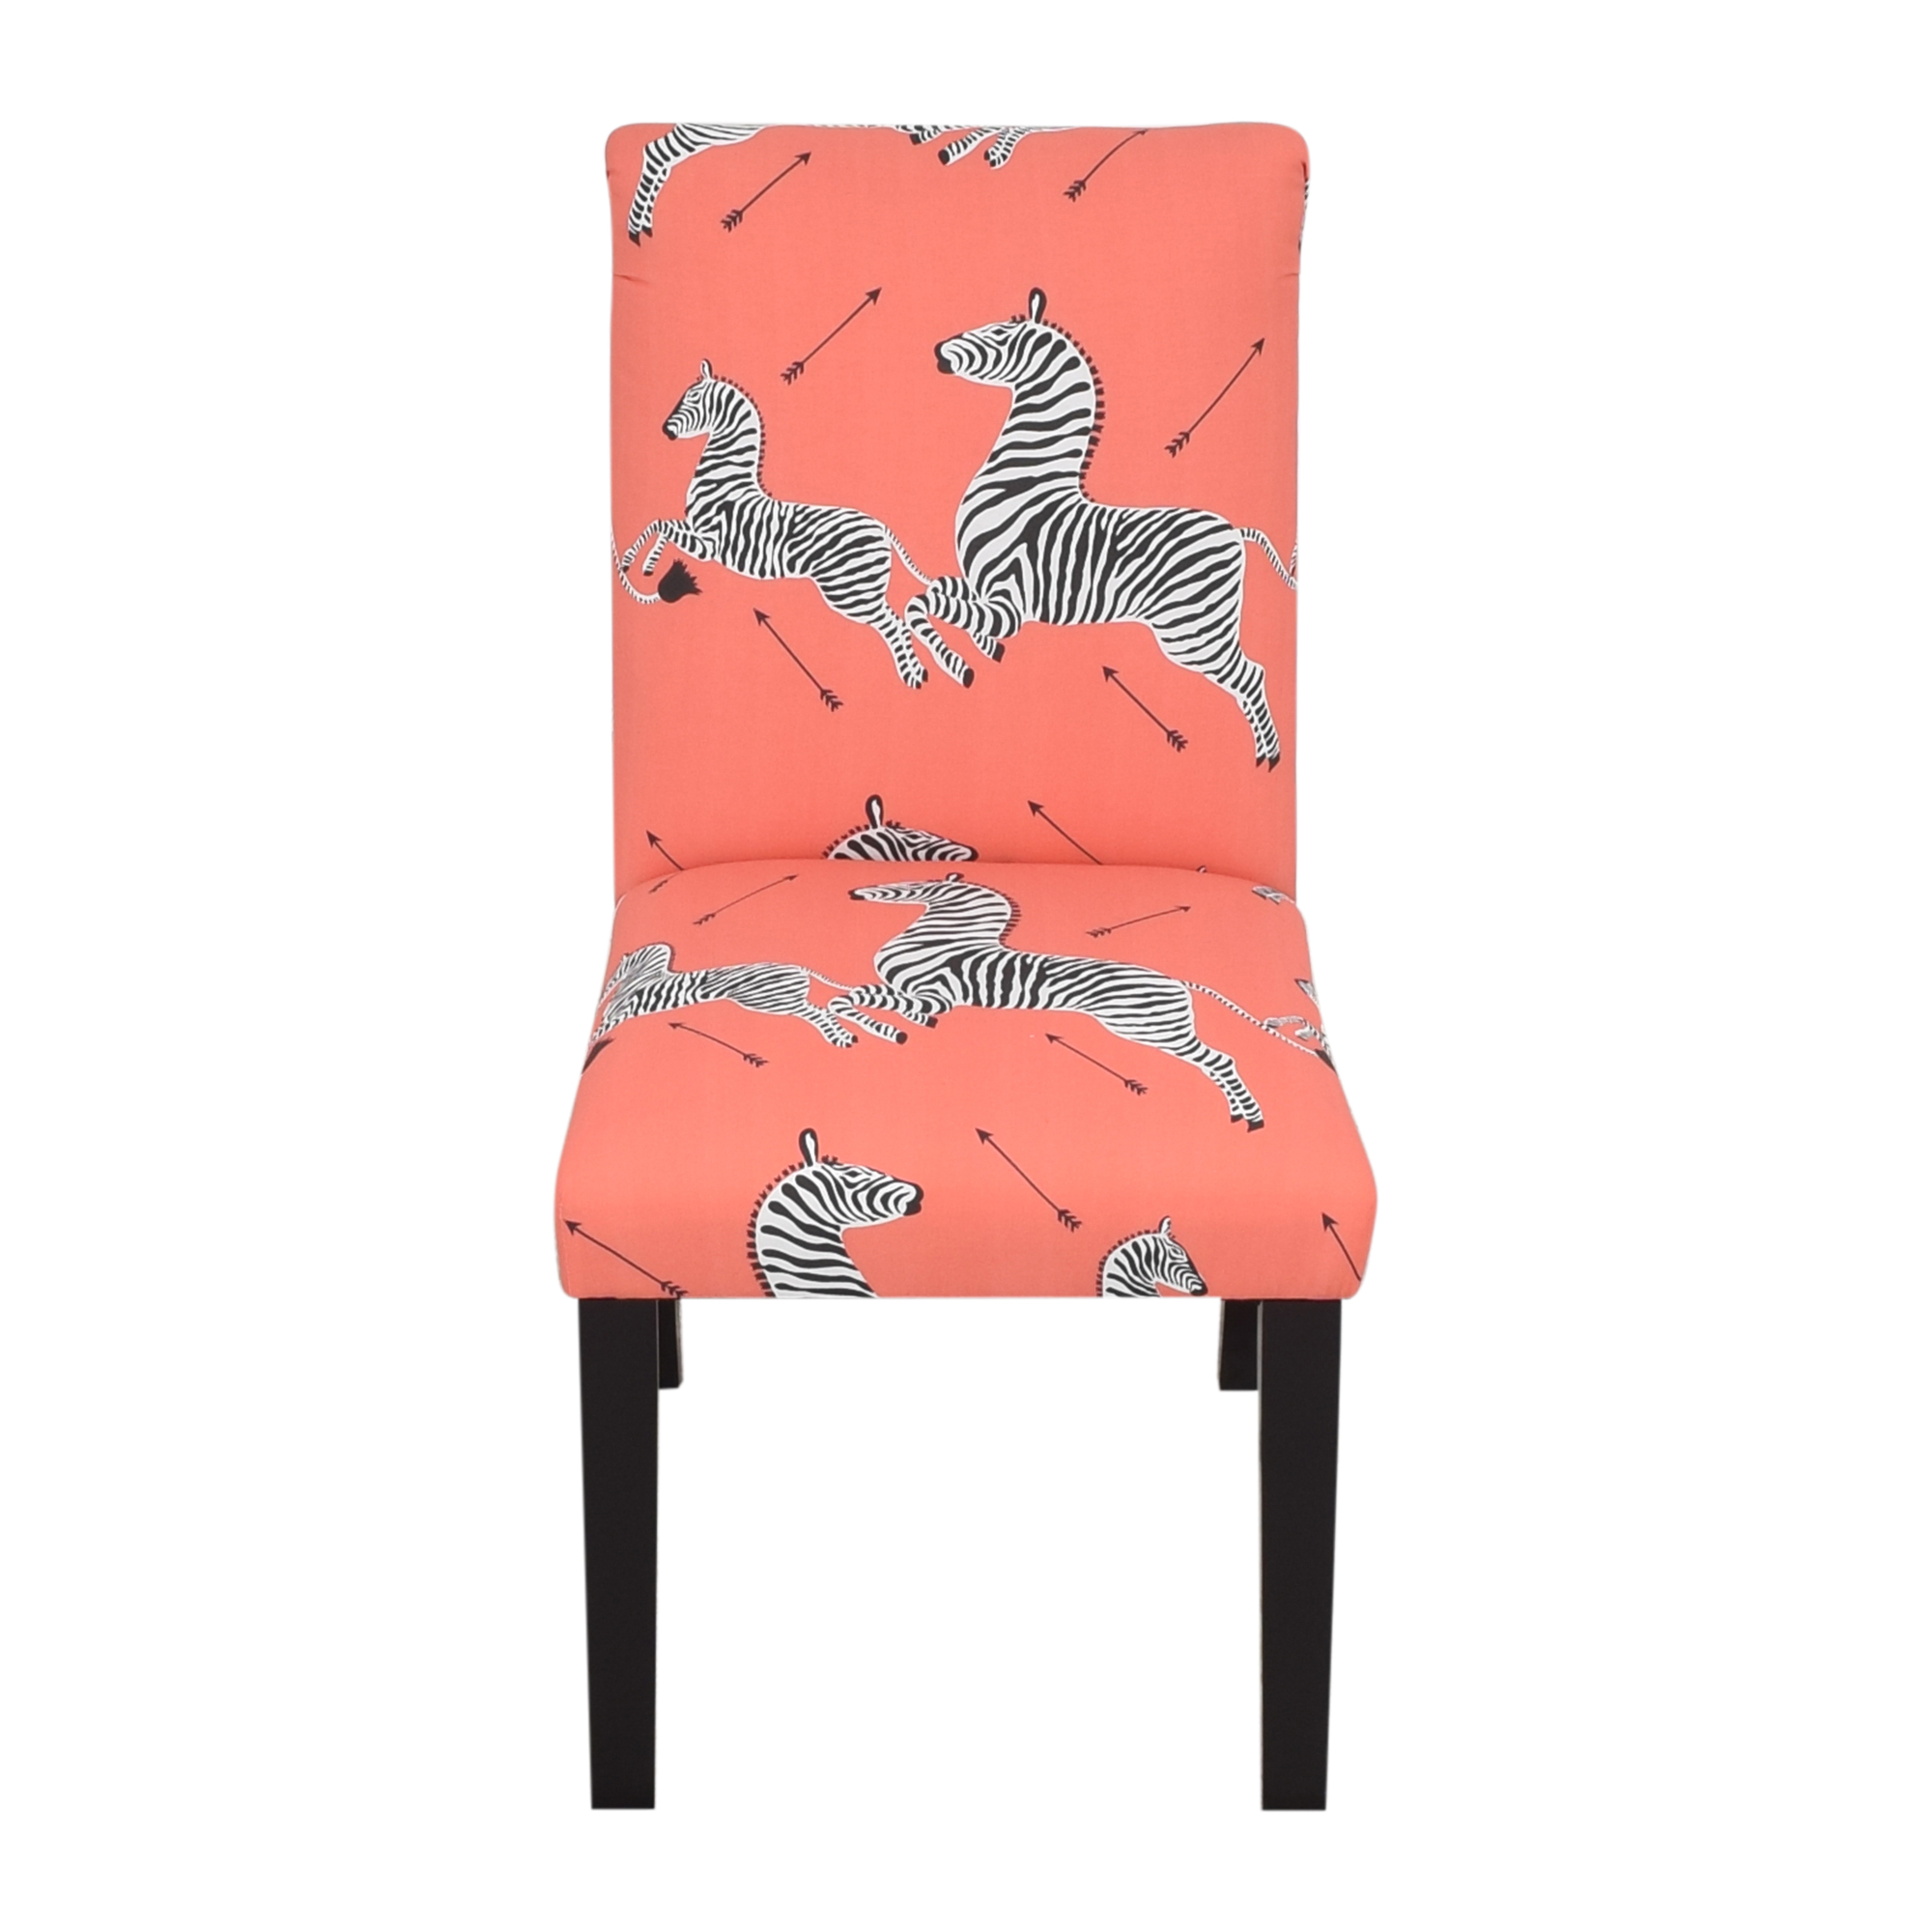 The Inside The Inside Coral Zebra Classic Dining Chair used